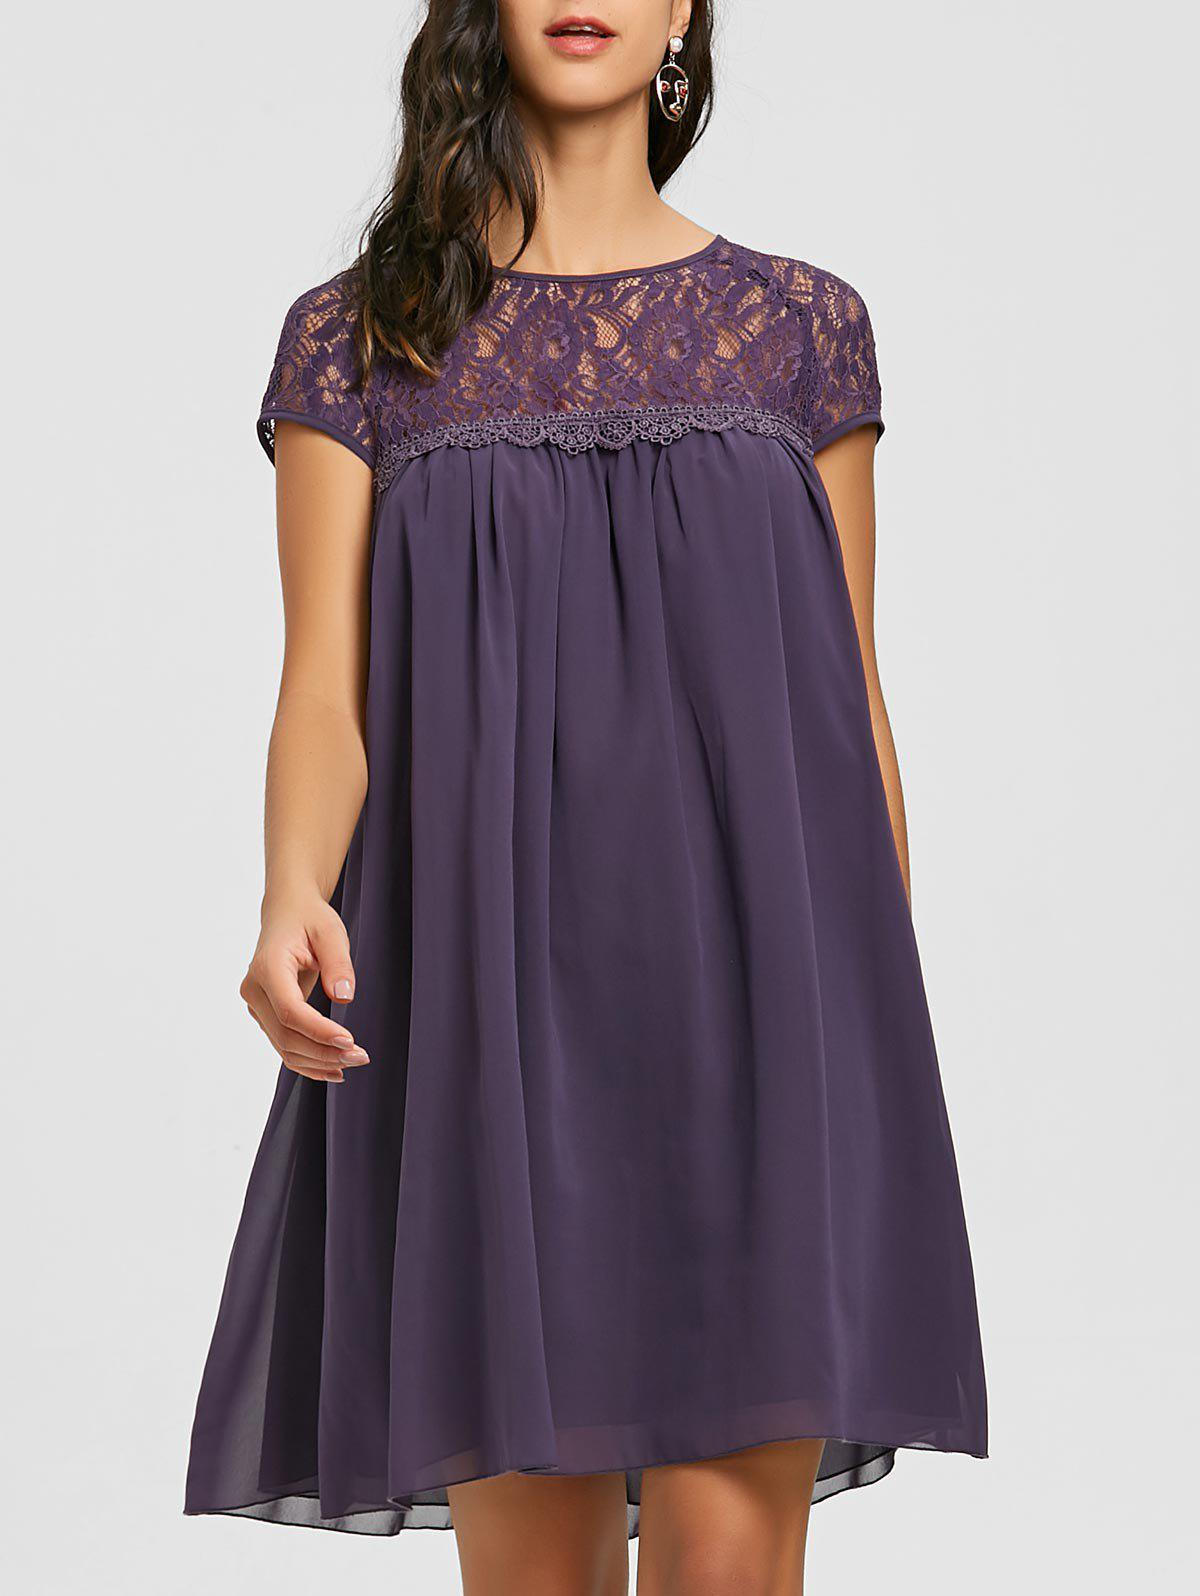 Lace Panel Flowy Babydoll Dress - PURPLE L